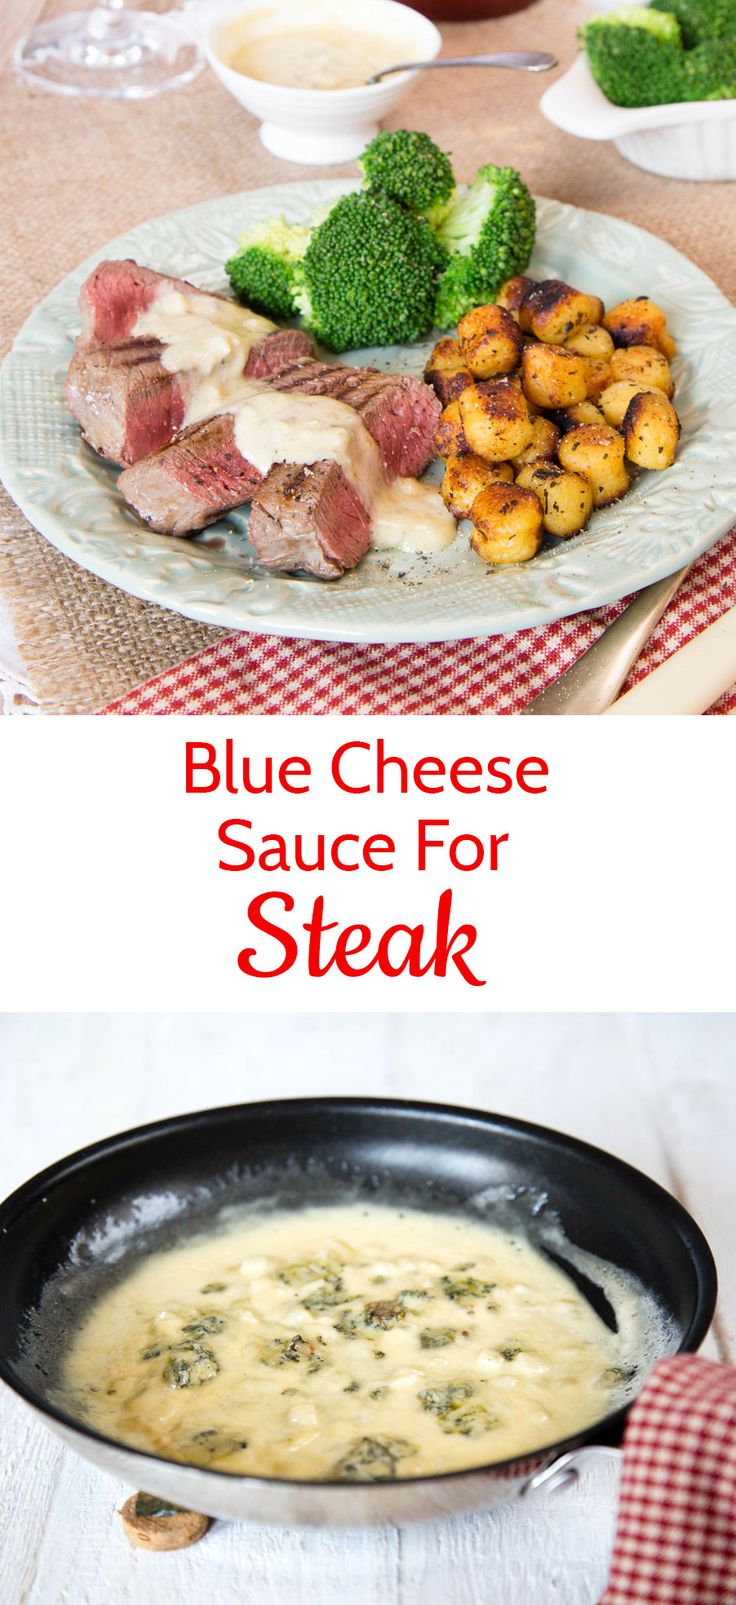 Adding a sauce to a steak turns it into a restaurant quality meal. Try this Stilton steak sauce next time you have steak.